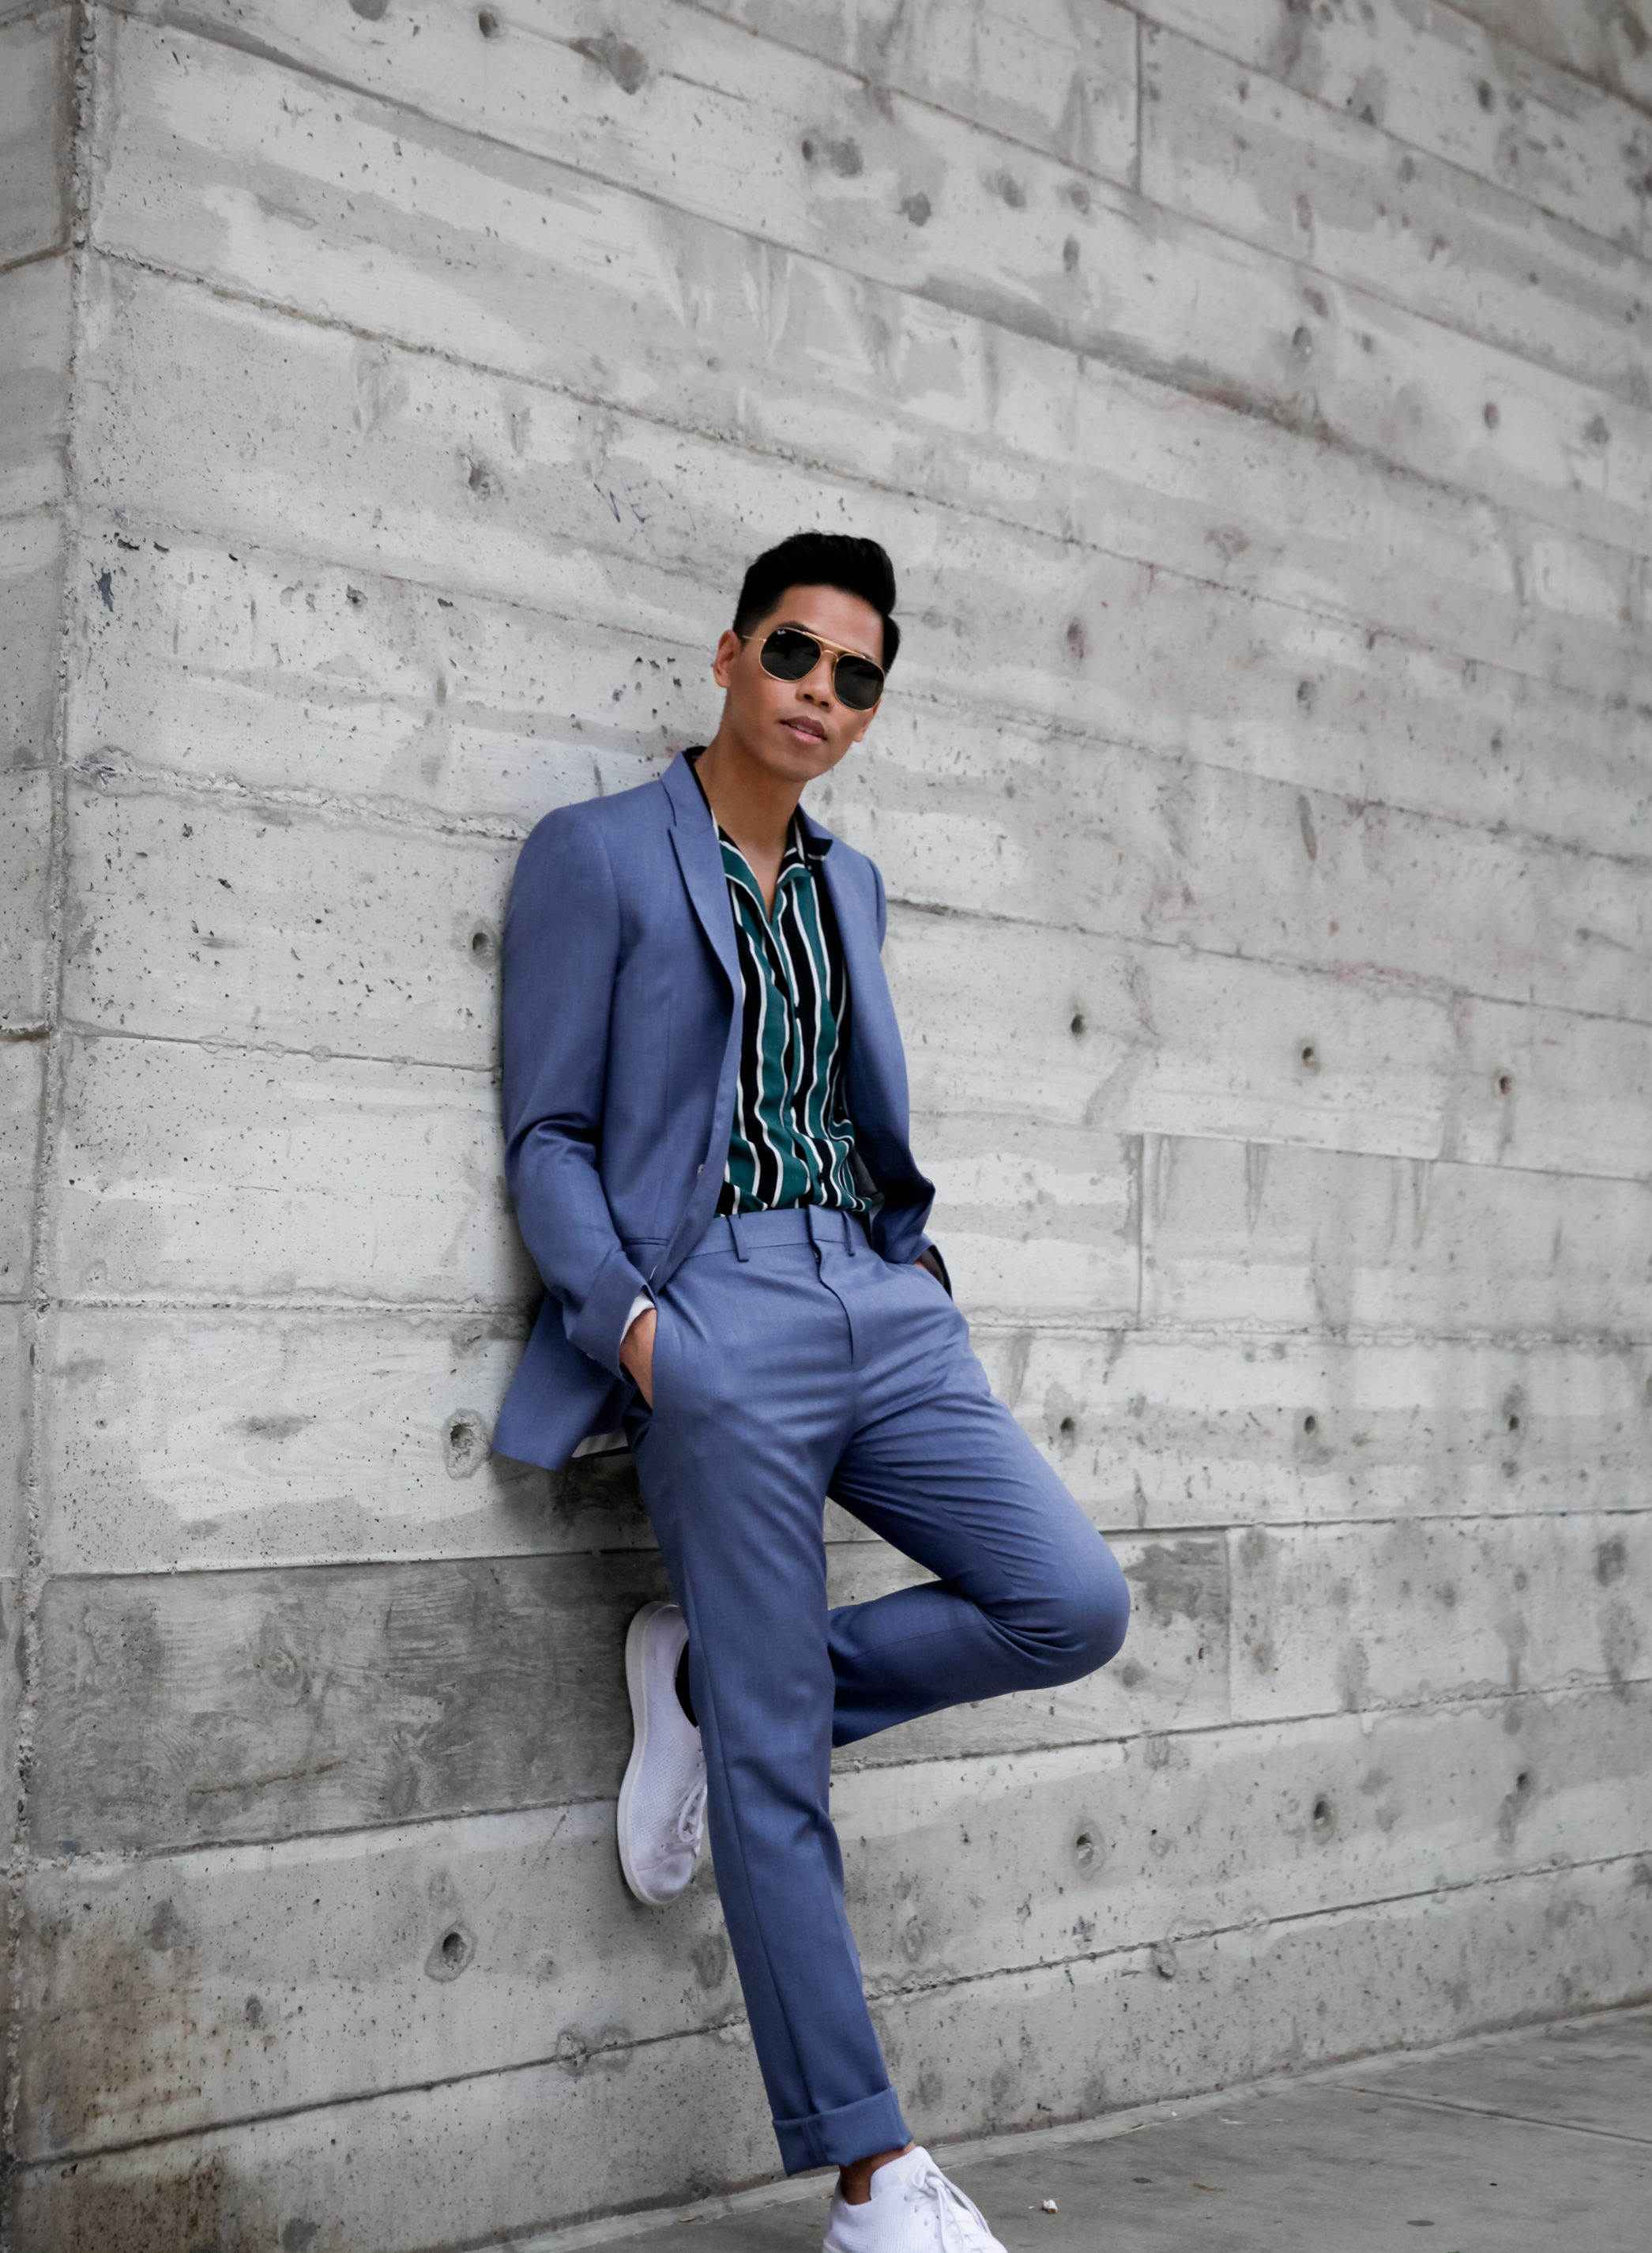 nordstrom x topman spring suiting